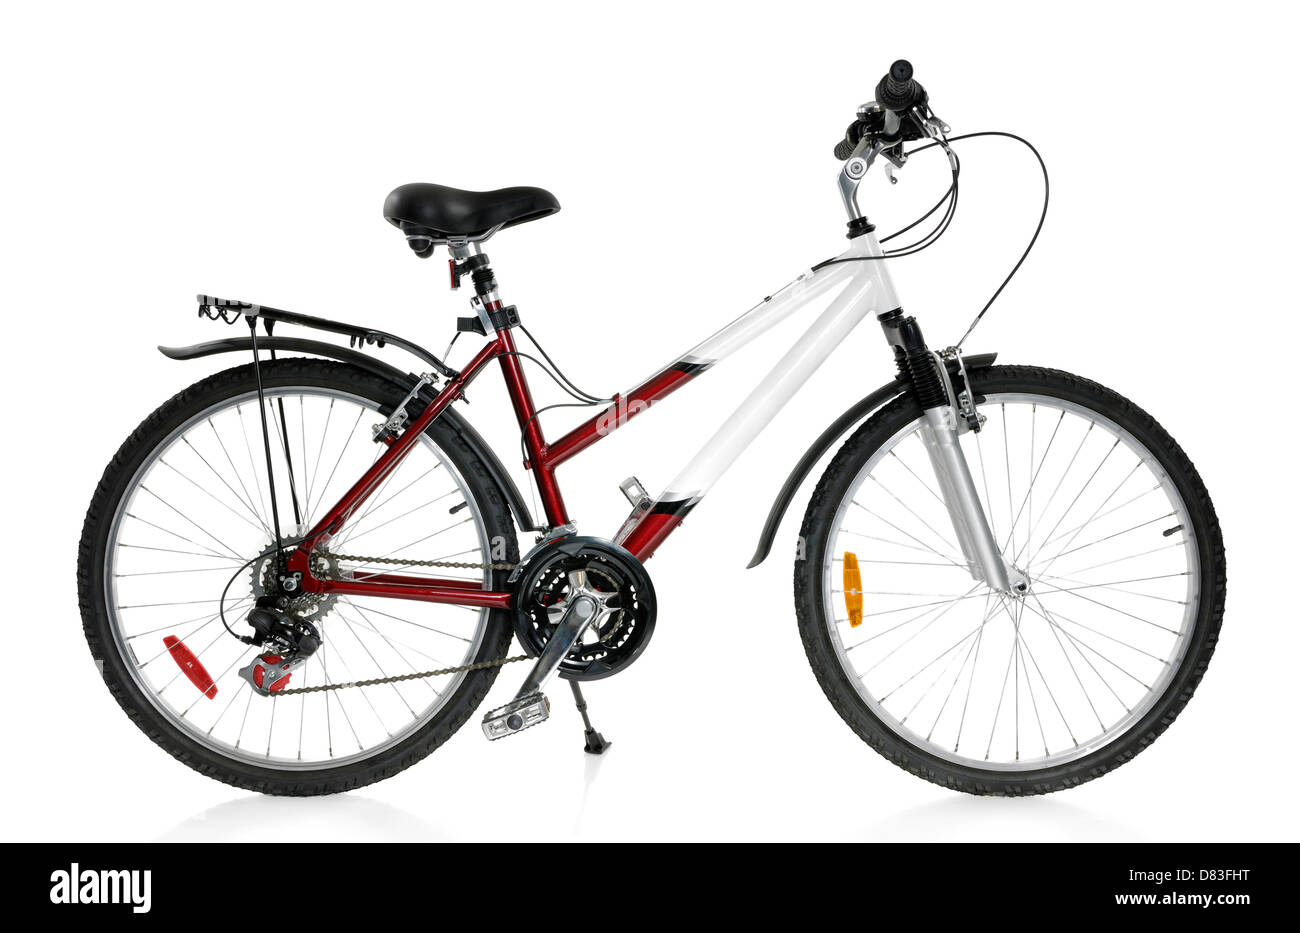 MTB sport 21-speed womens mountain bicycle Isolated on white background - Stock Image